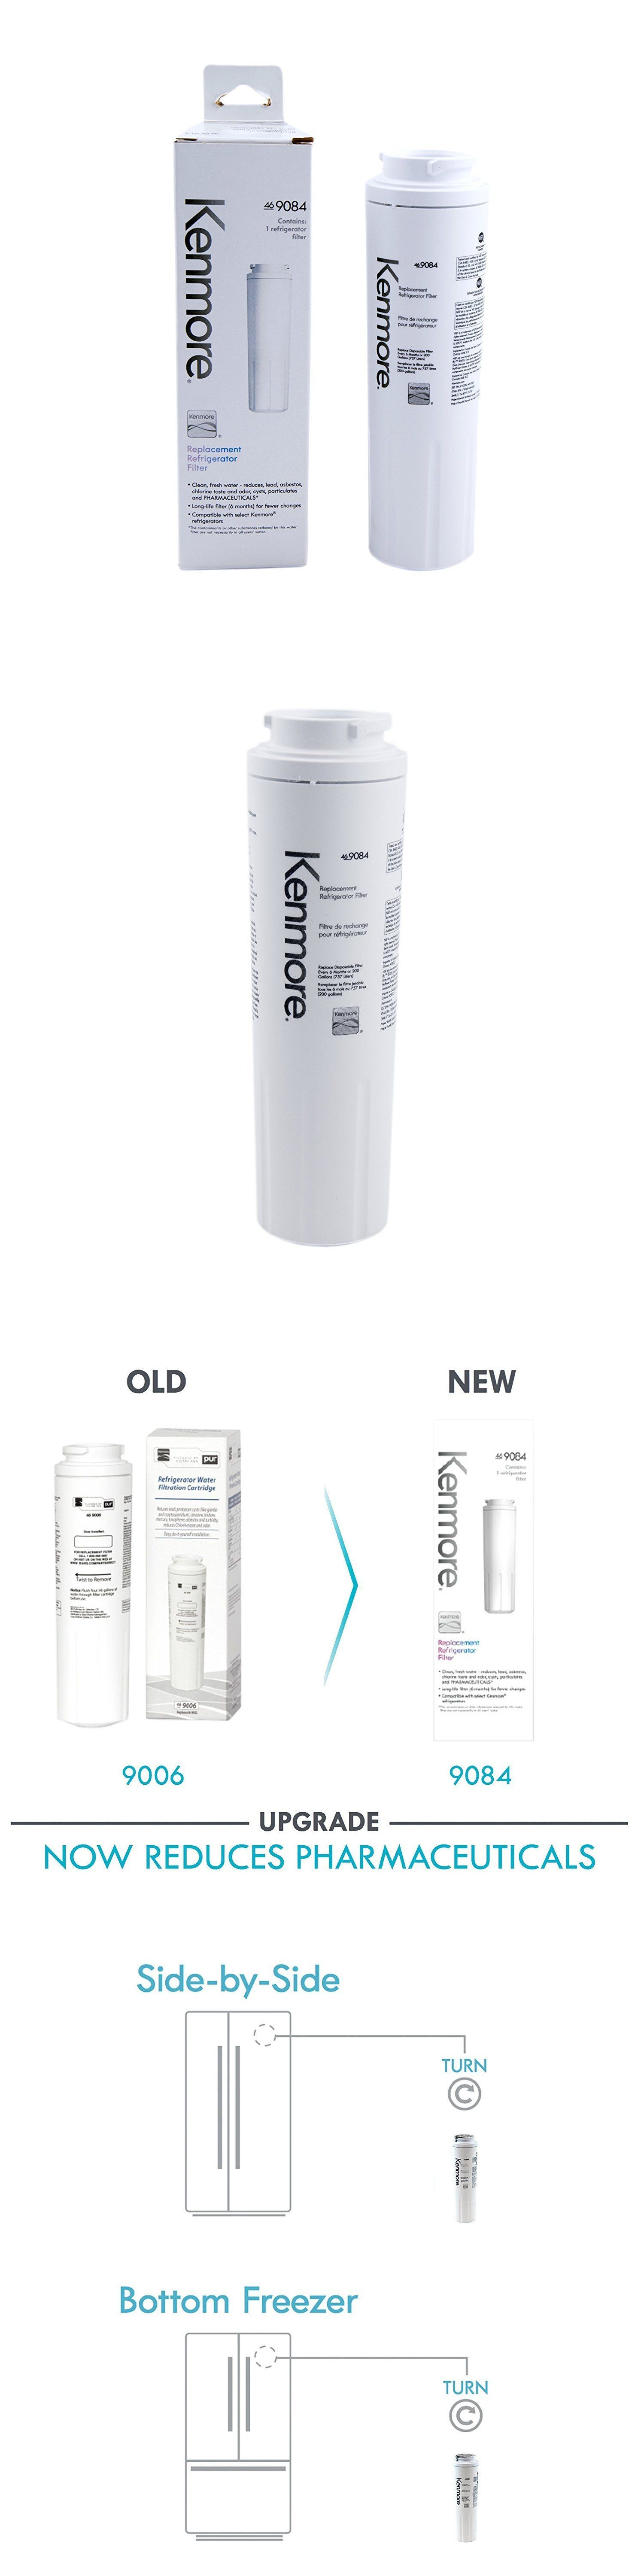 Water Filters 20684 Fits Kenmore 9084 9084 Refrigerator Water Filter White Buy It Now Only 10 On Ebay Water Filters K Water Filters 20684 Water